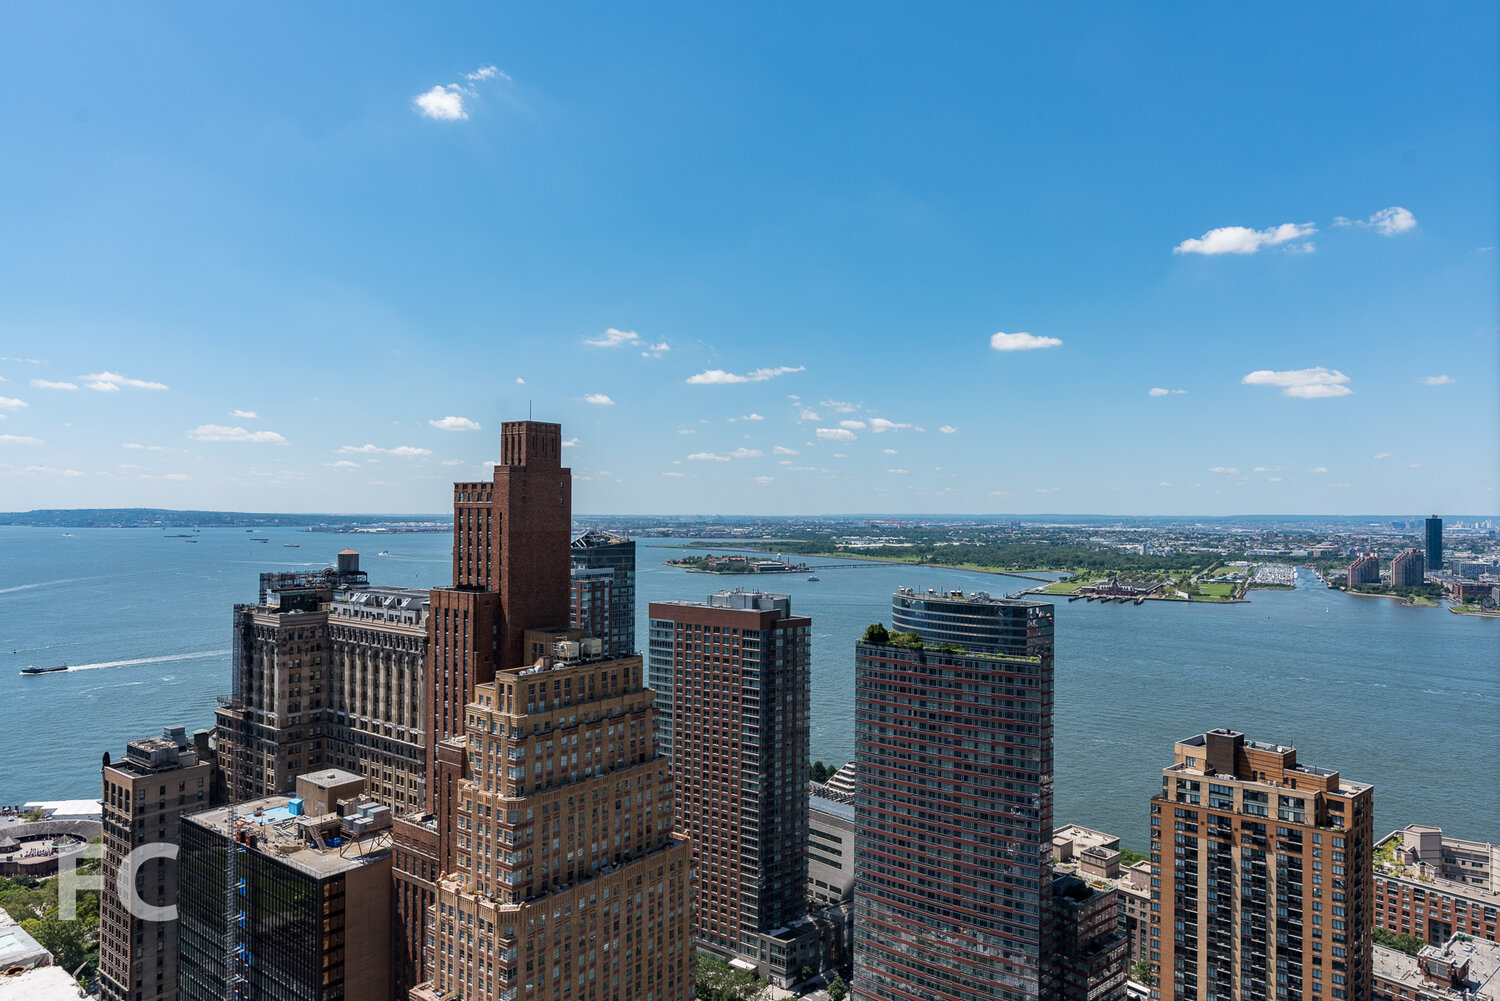 View southwest towards Battery Park City and Jersey City from the top floor.